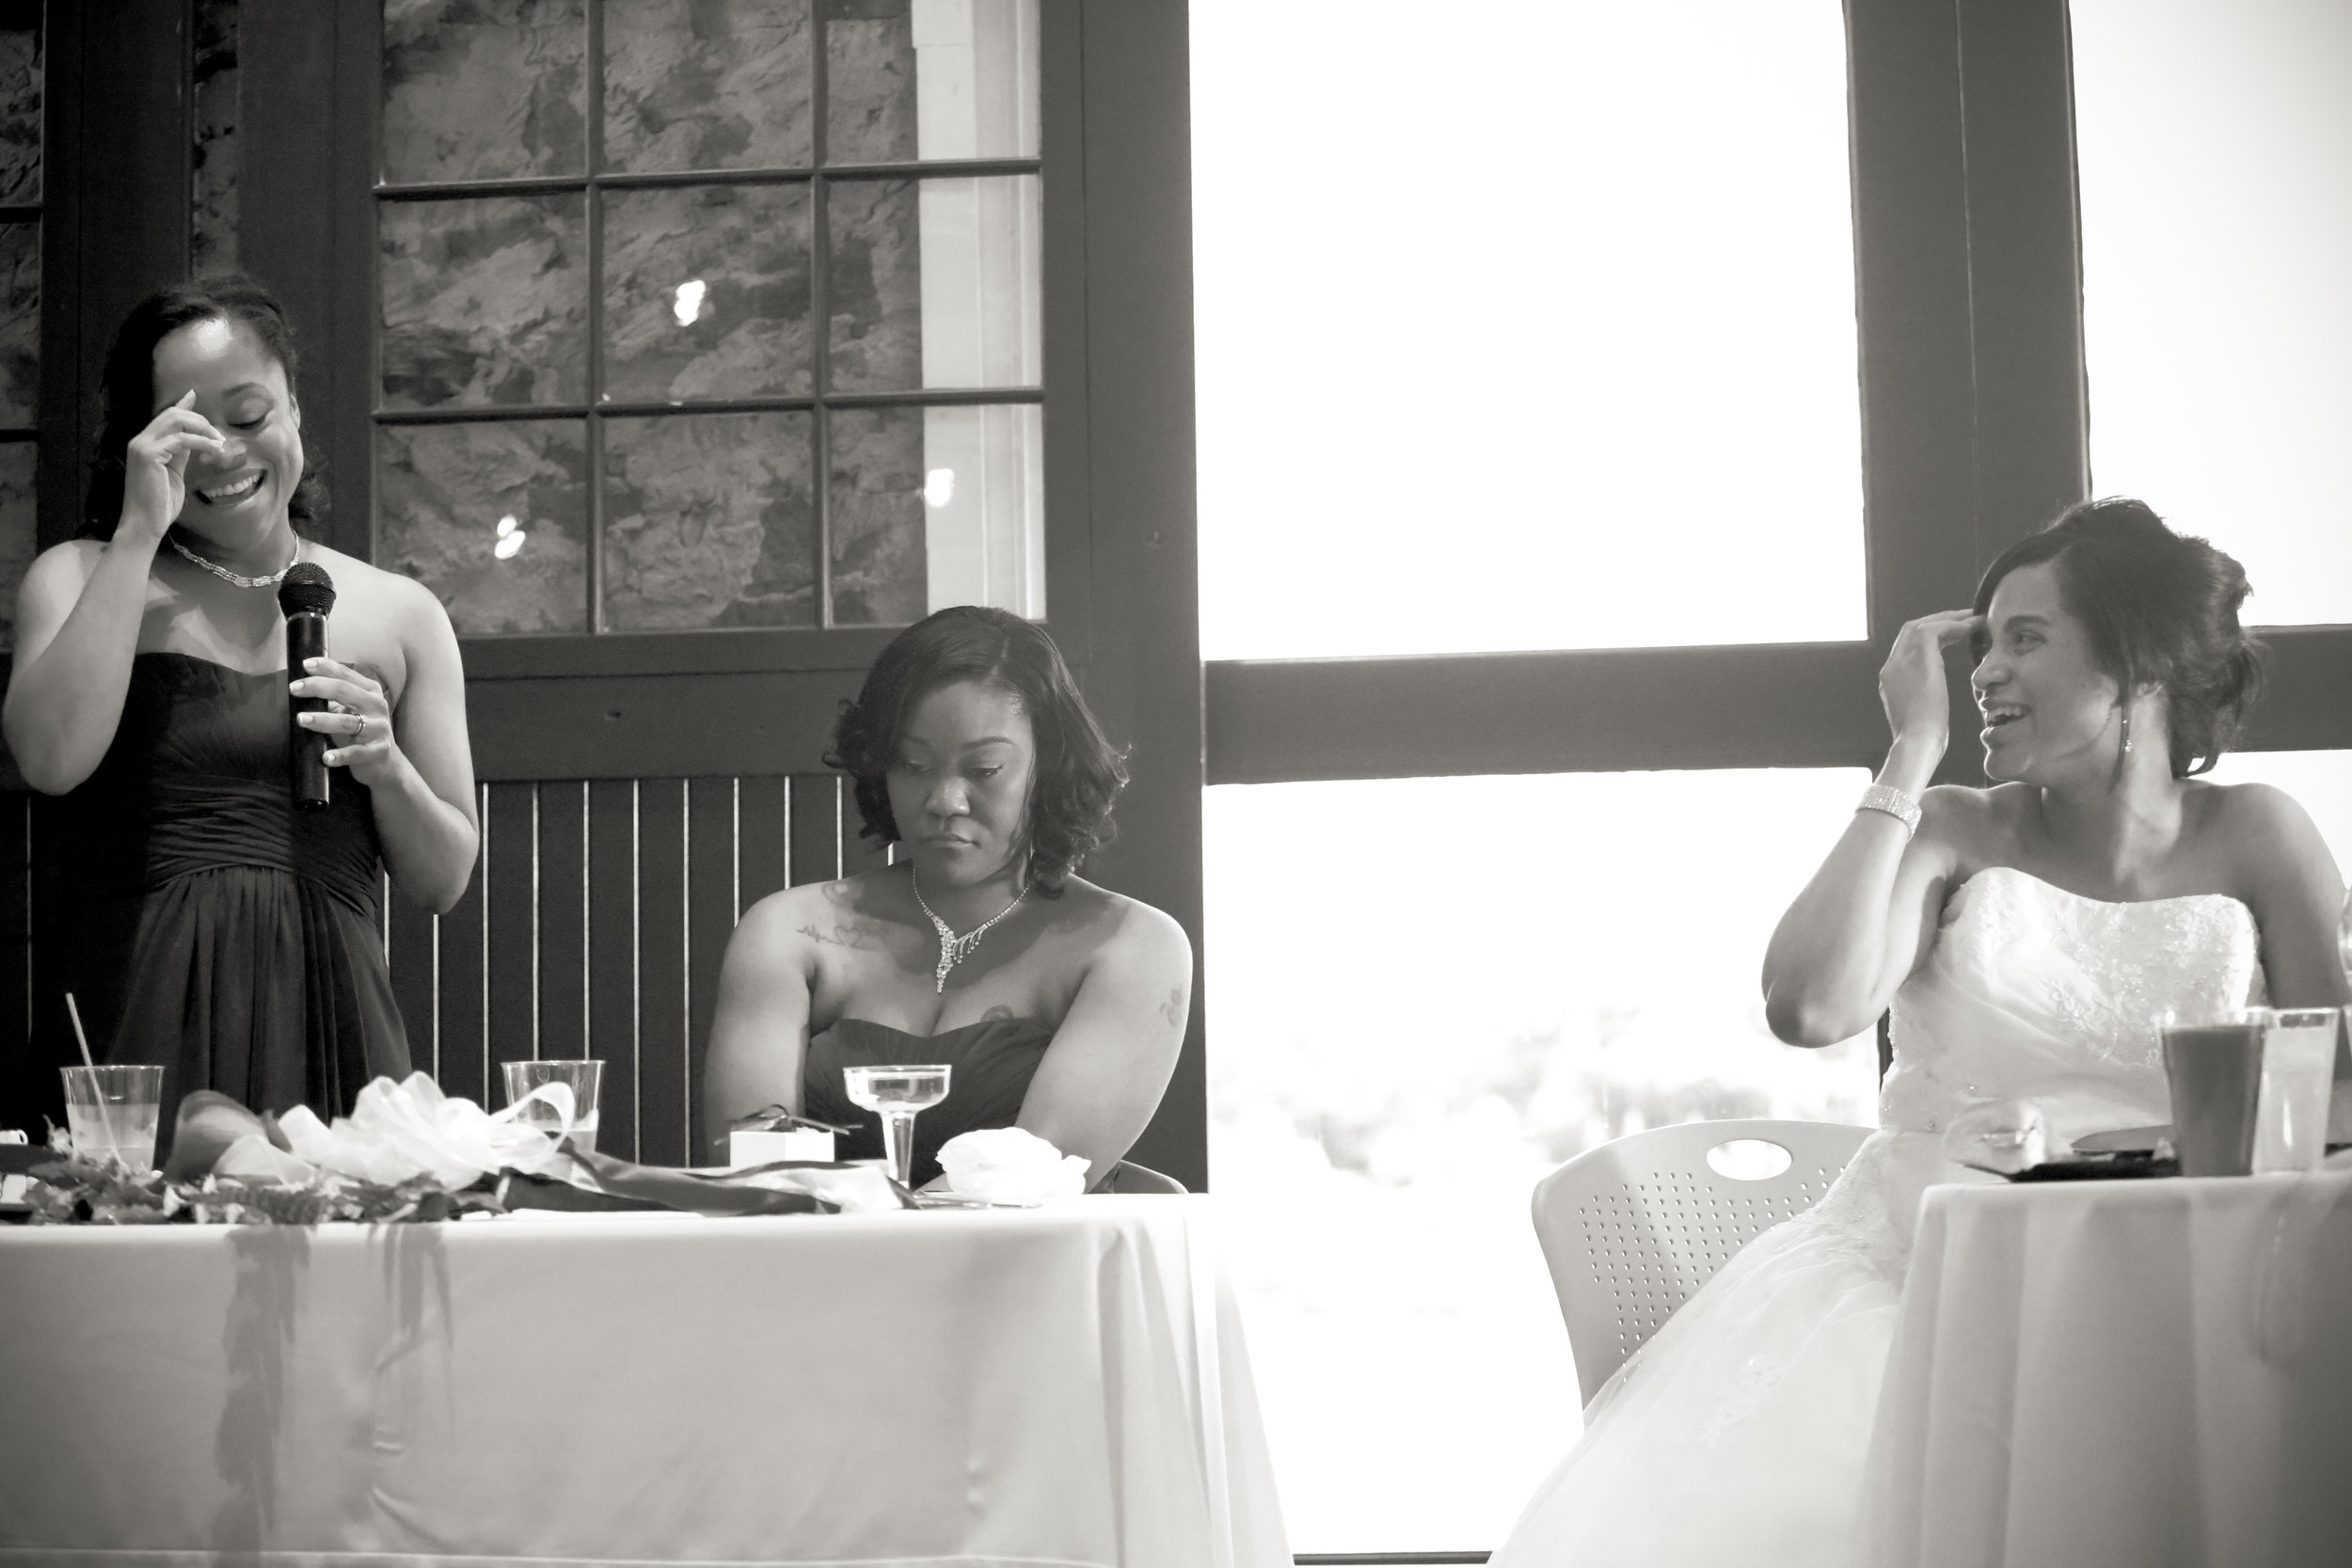 5-24-14_Errol Ebanks_The Finney Wedding_0878.jpg